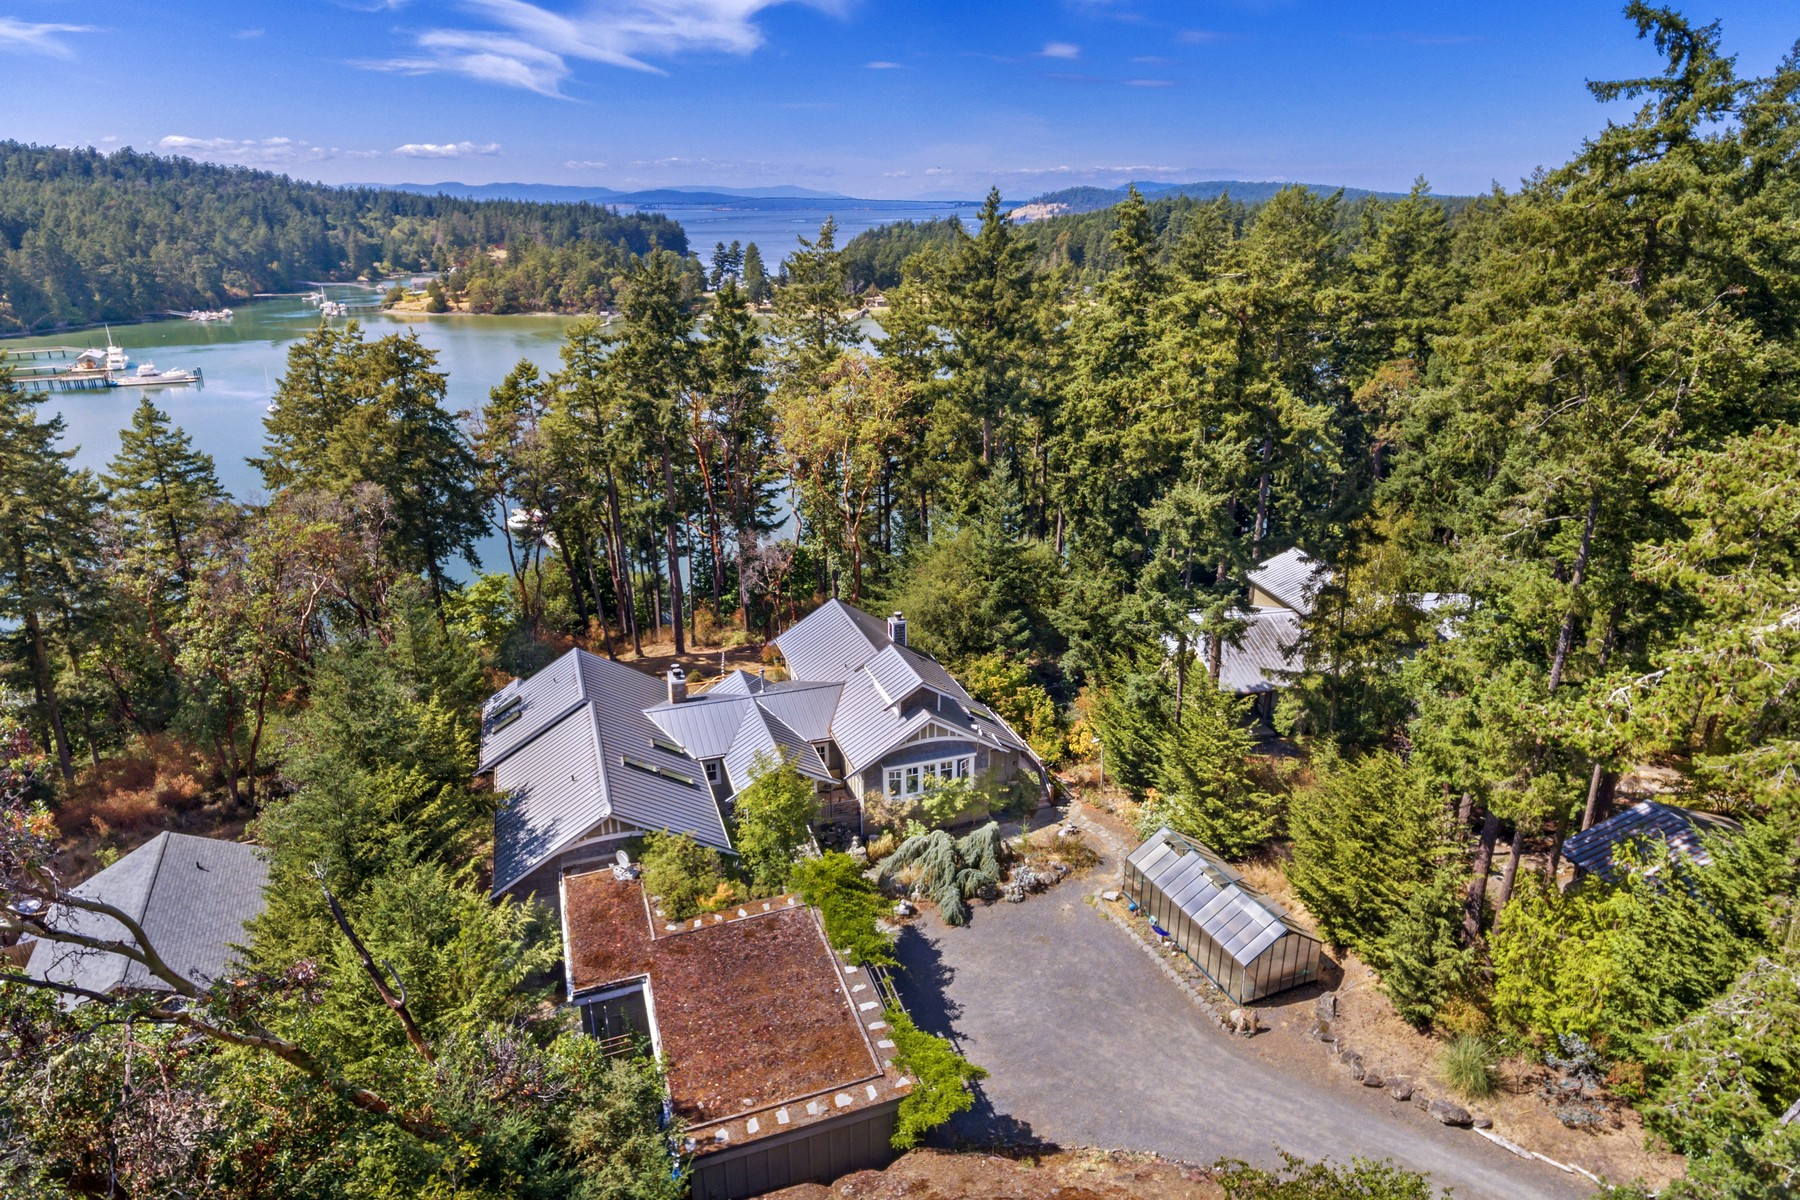 Single Family Home for Sale at Welcoming Home with Waterviews on San Juan Island Friday Harbor, Washington 98250 United States